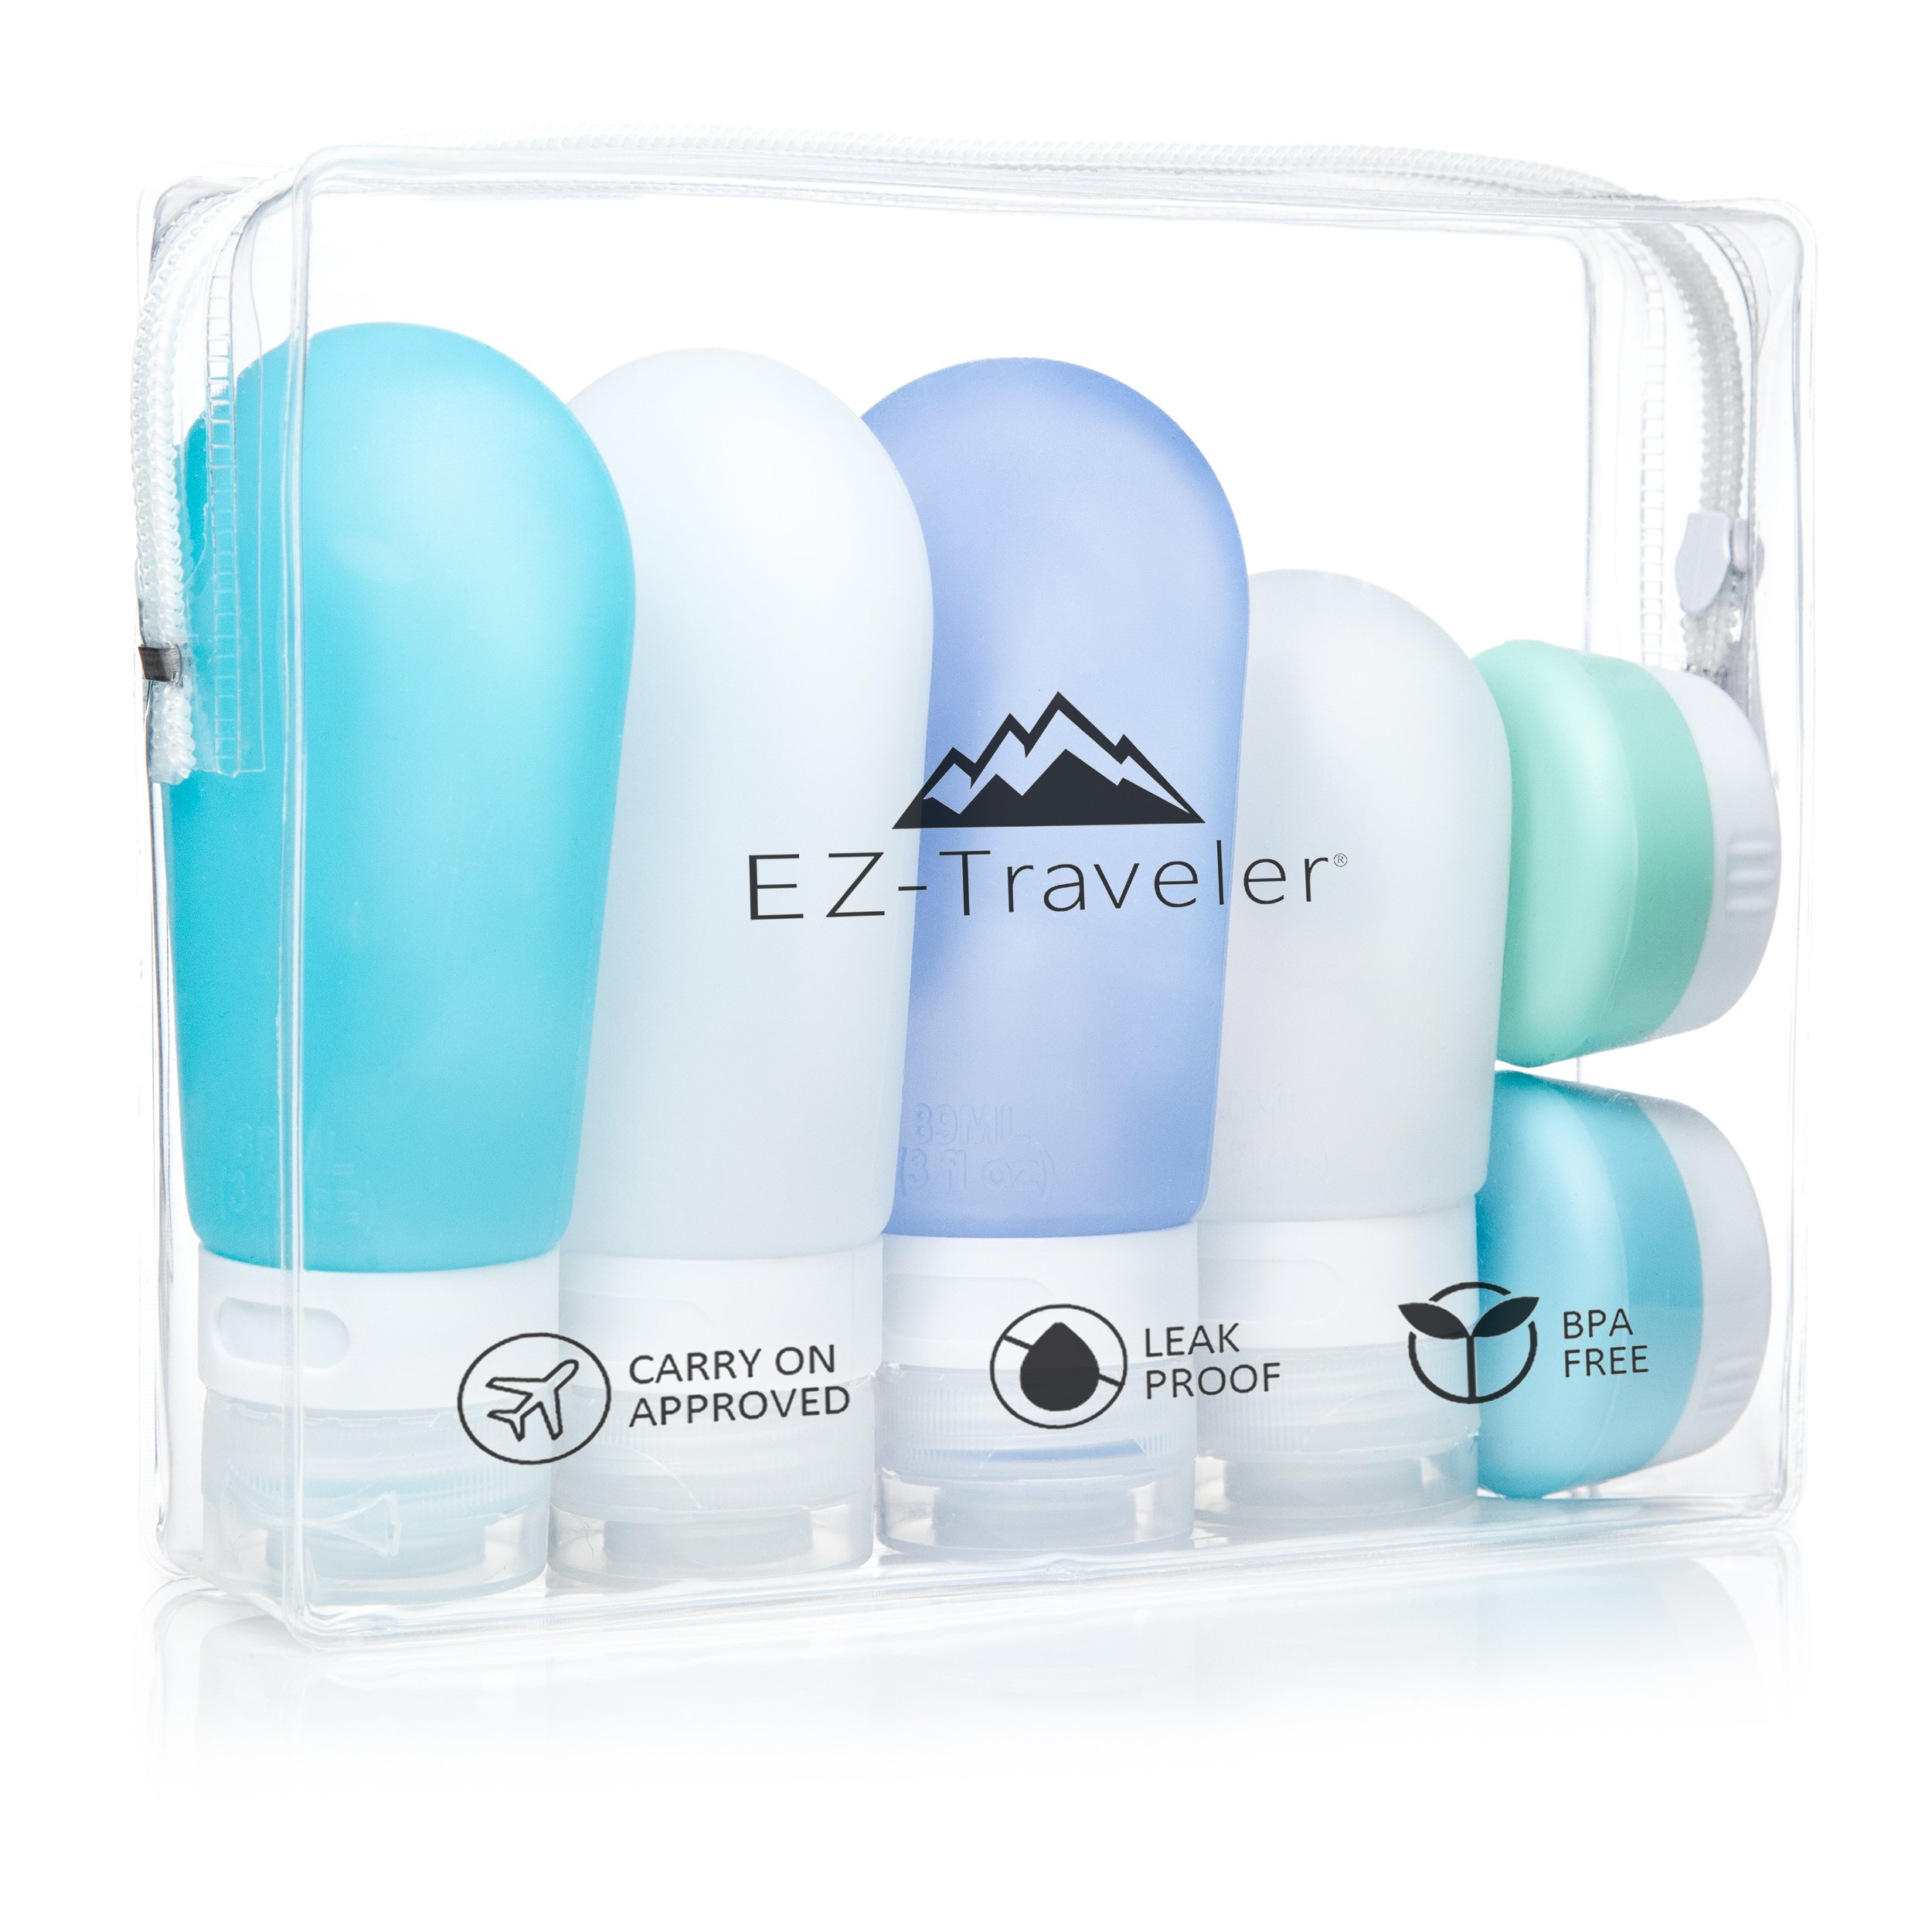 Silicone Travel Bottles & Toiletry Bag - Leak Proof, Refillable Shampoo, Lotion and Conditioner Containers. TSA & Airline approved by EZ-Traveler